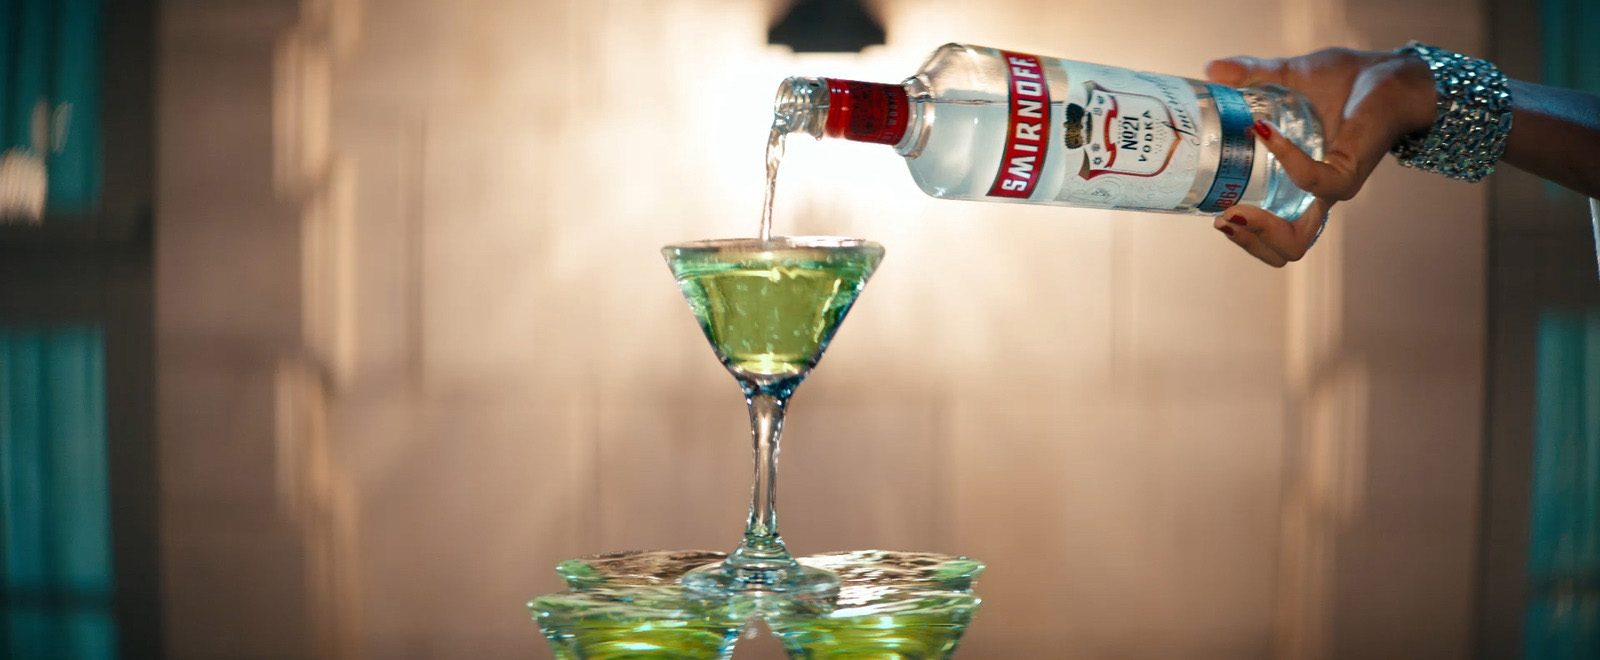 Smirnoff creates a cocktail tree made out of festive Smirnoff No. 21 Green Apple Martinis.